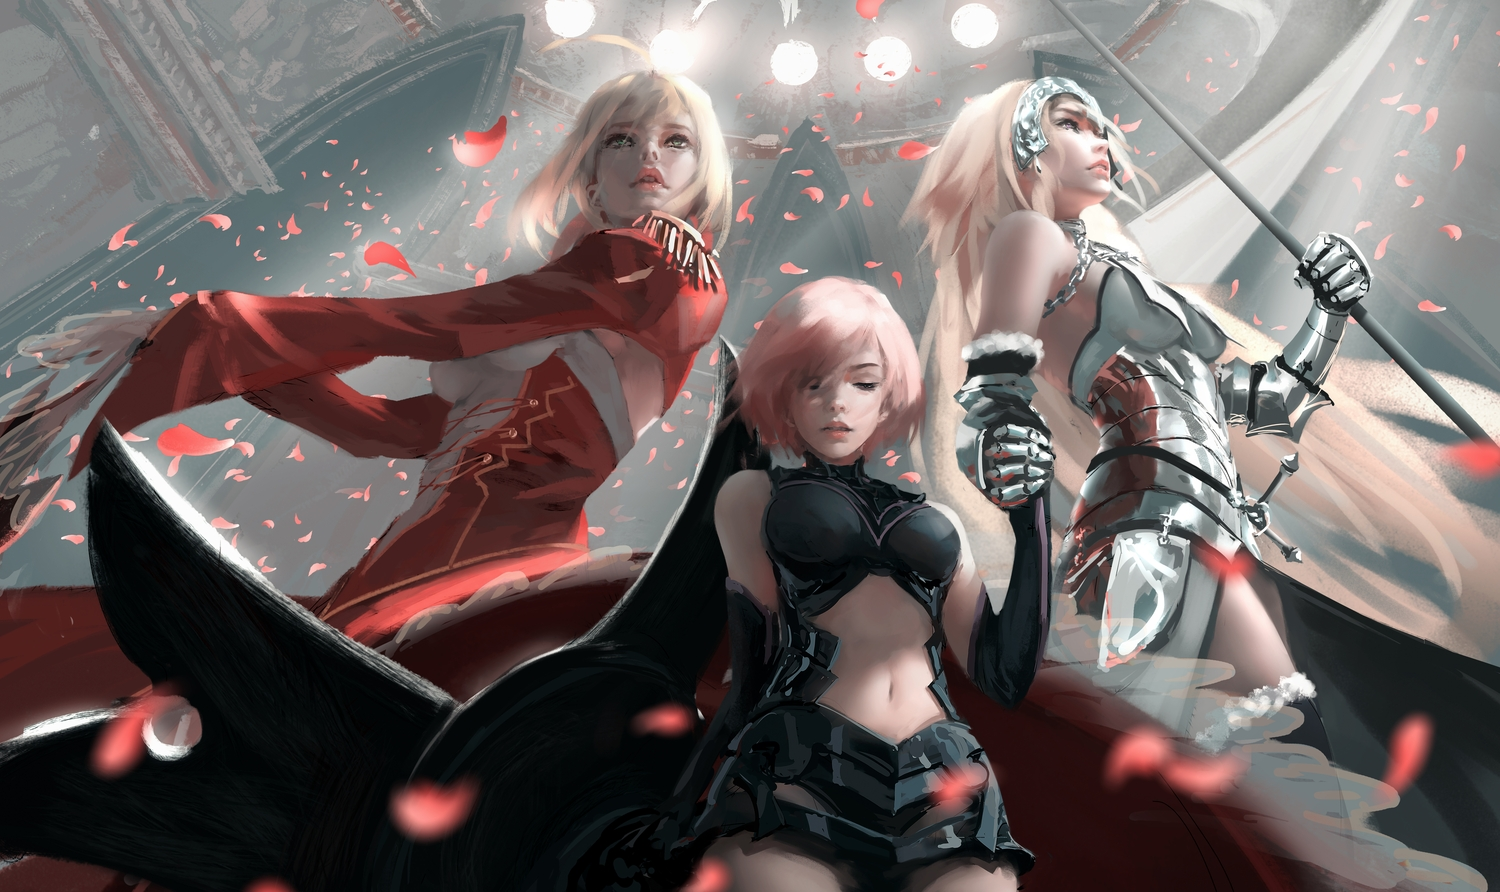 blonde_hair breasts chain dress elbow_gloves fate/extra fate/grand_order fate_(series) gloves green_eyes headdress jeanne_d'arc_(fate) mash_kyrielight navel nero_claudius_(fate) purple_eyes short_hair wlop